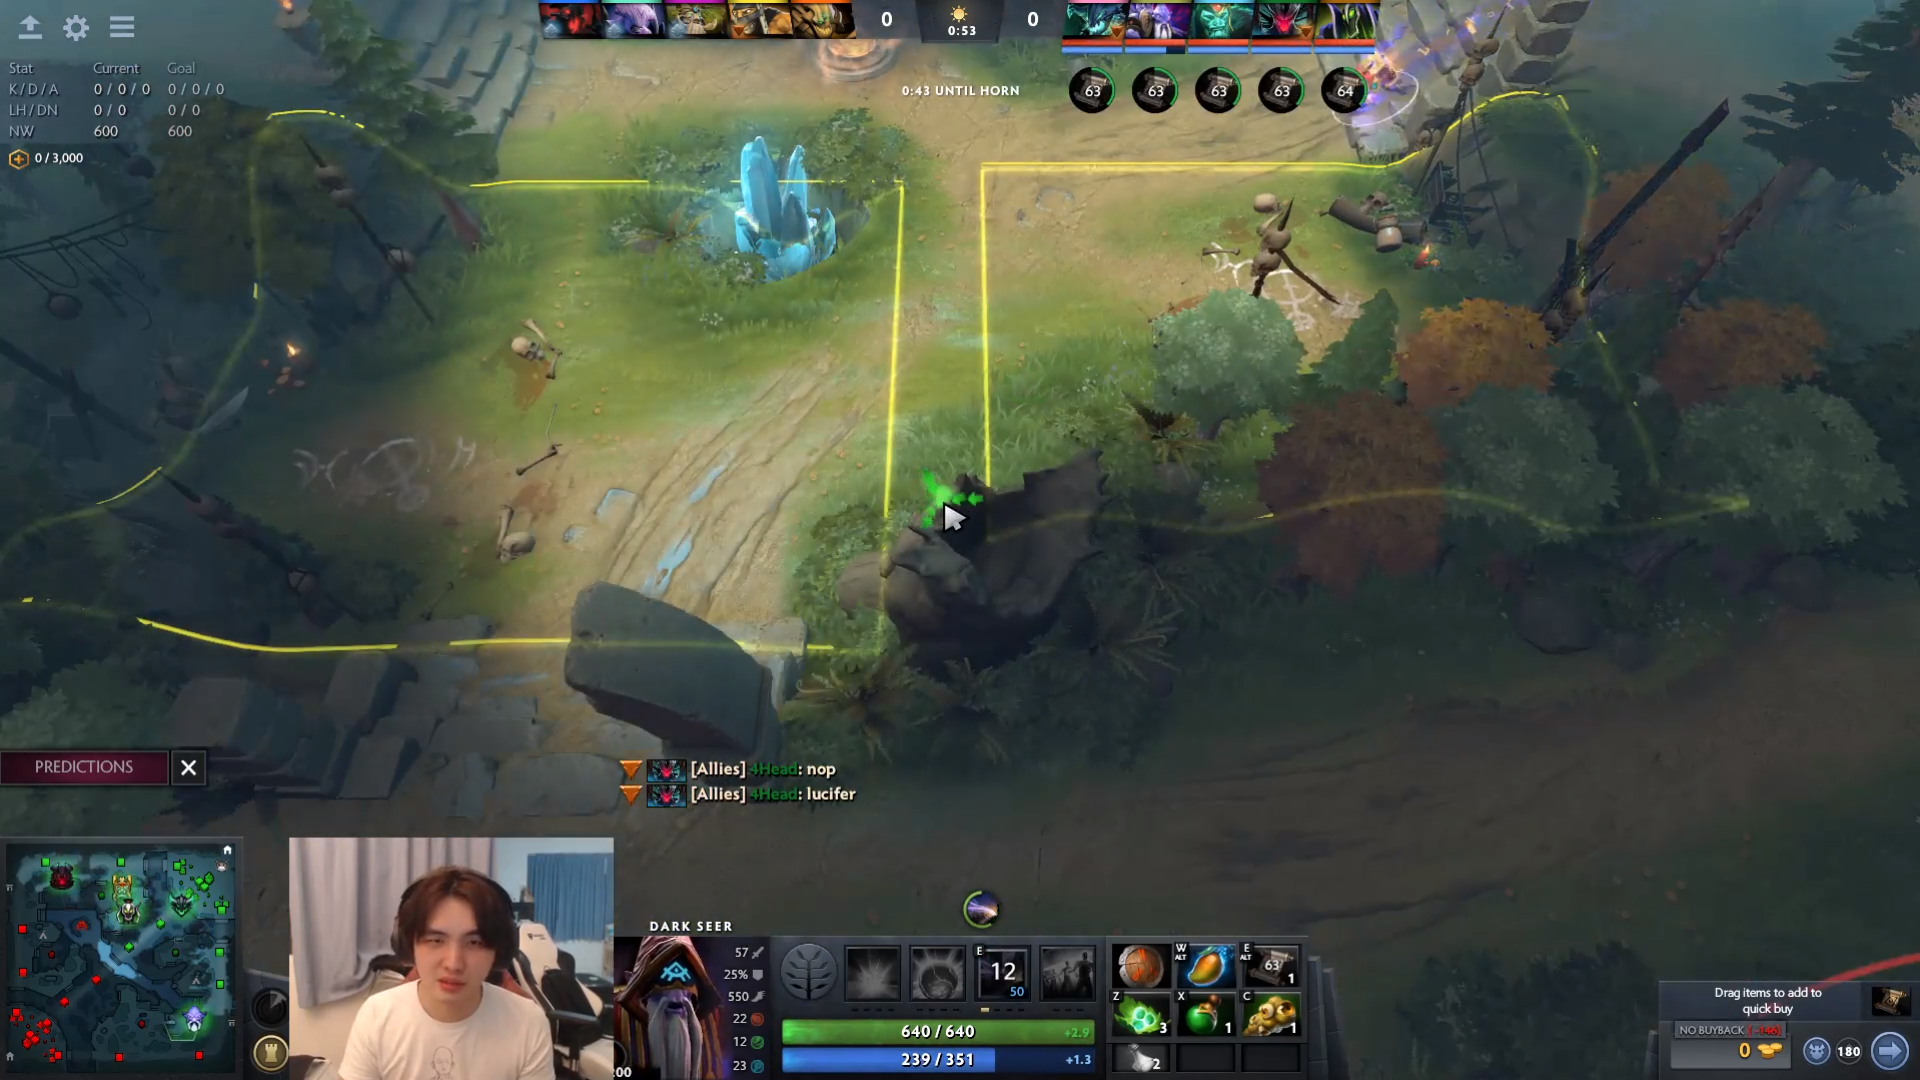 Dota 2 Pro's Twitch Channel Closed After Using N-Word To Describe His Name [Updated]